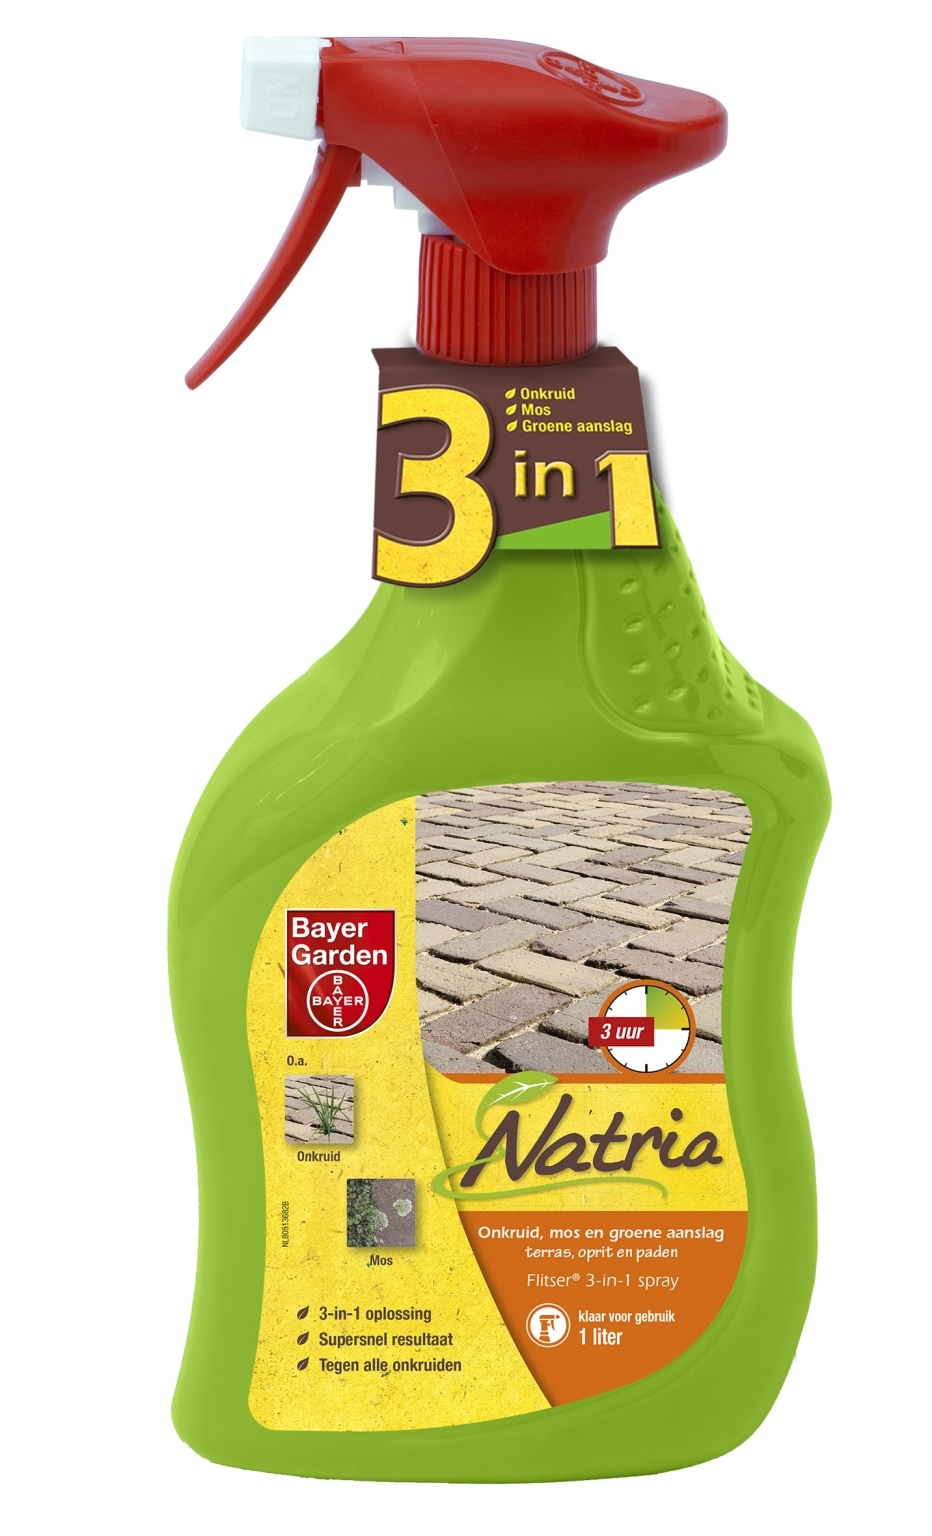 Natria Flitser Bayer Natria Flitser® 3-in-1 Spray 1l